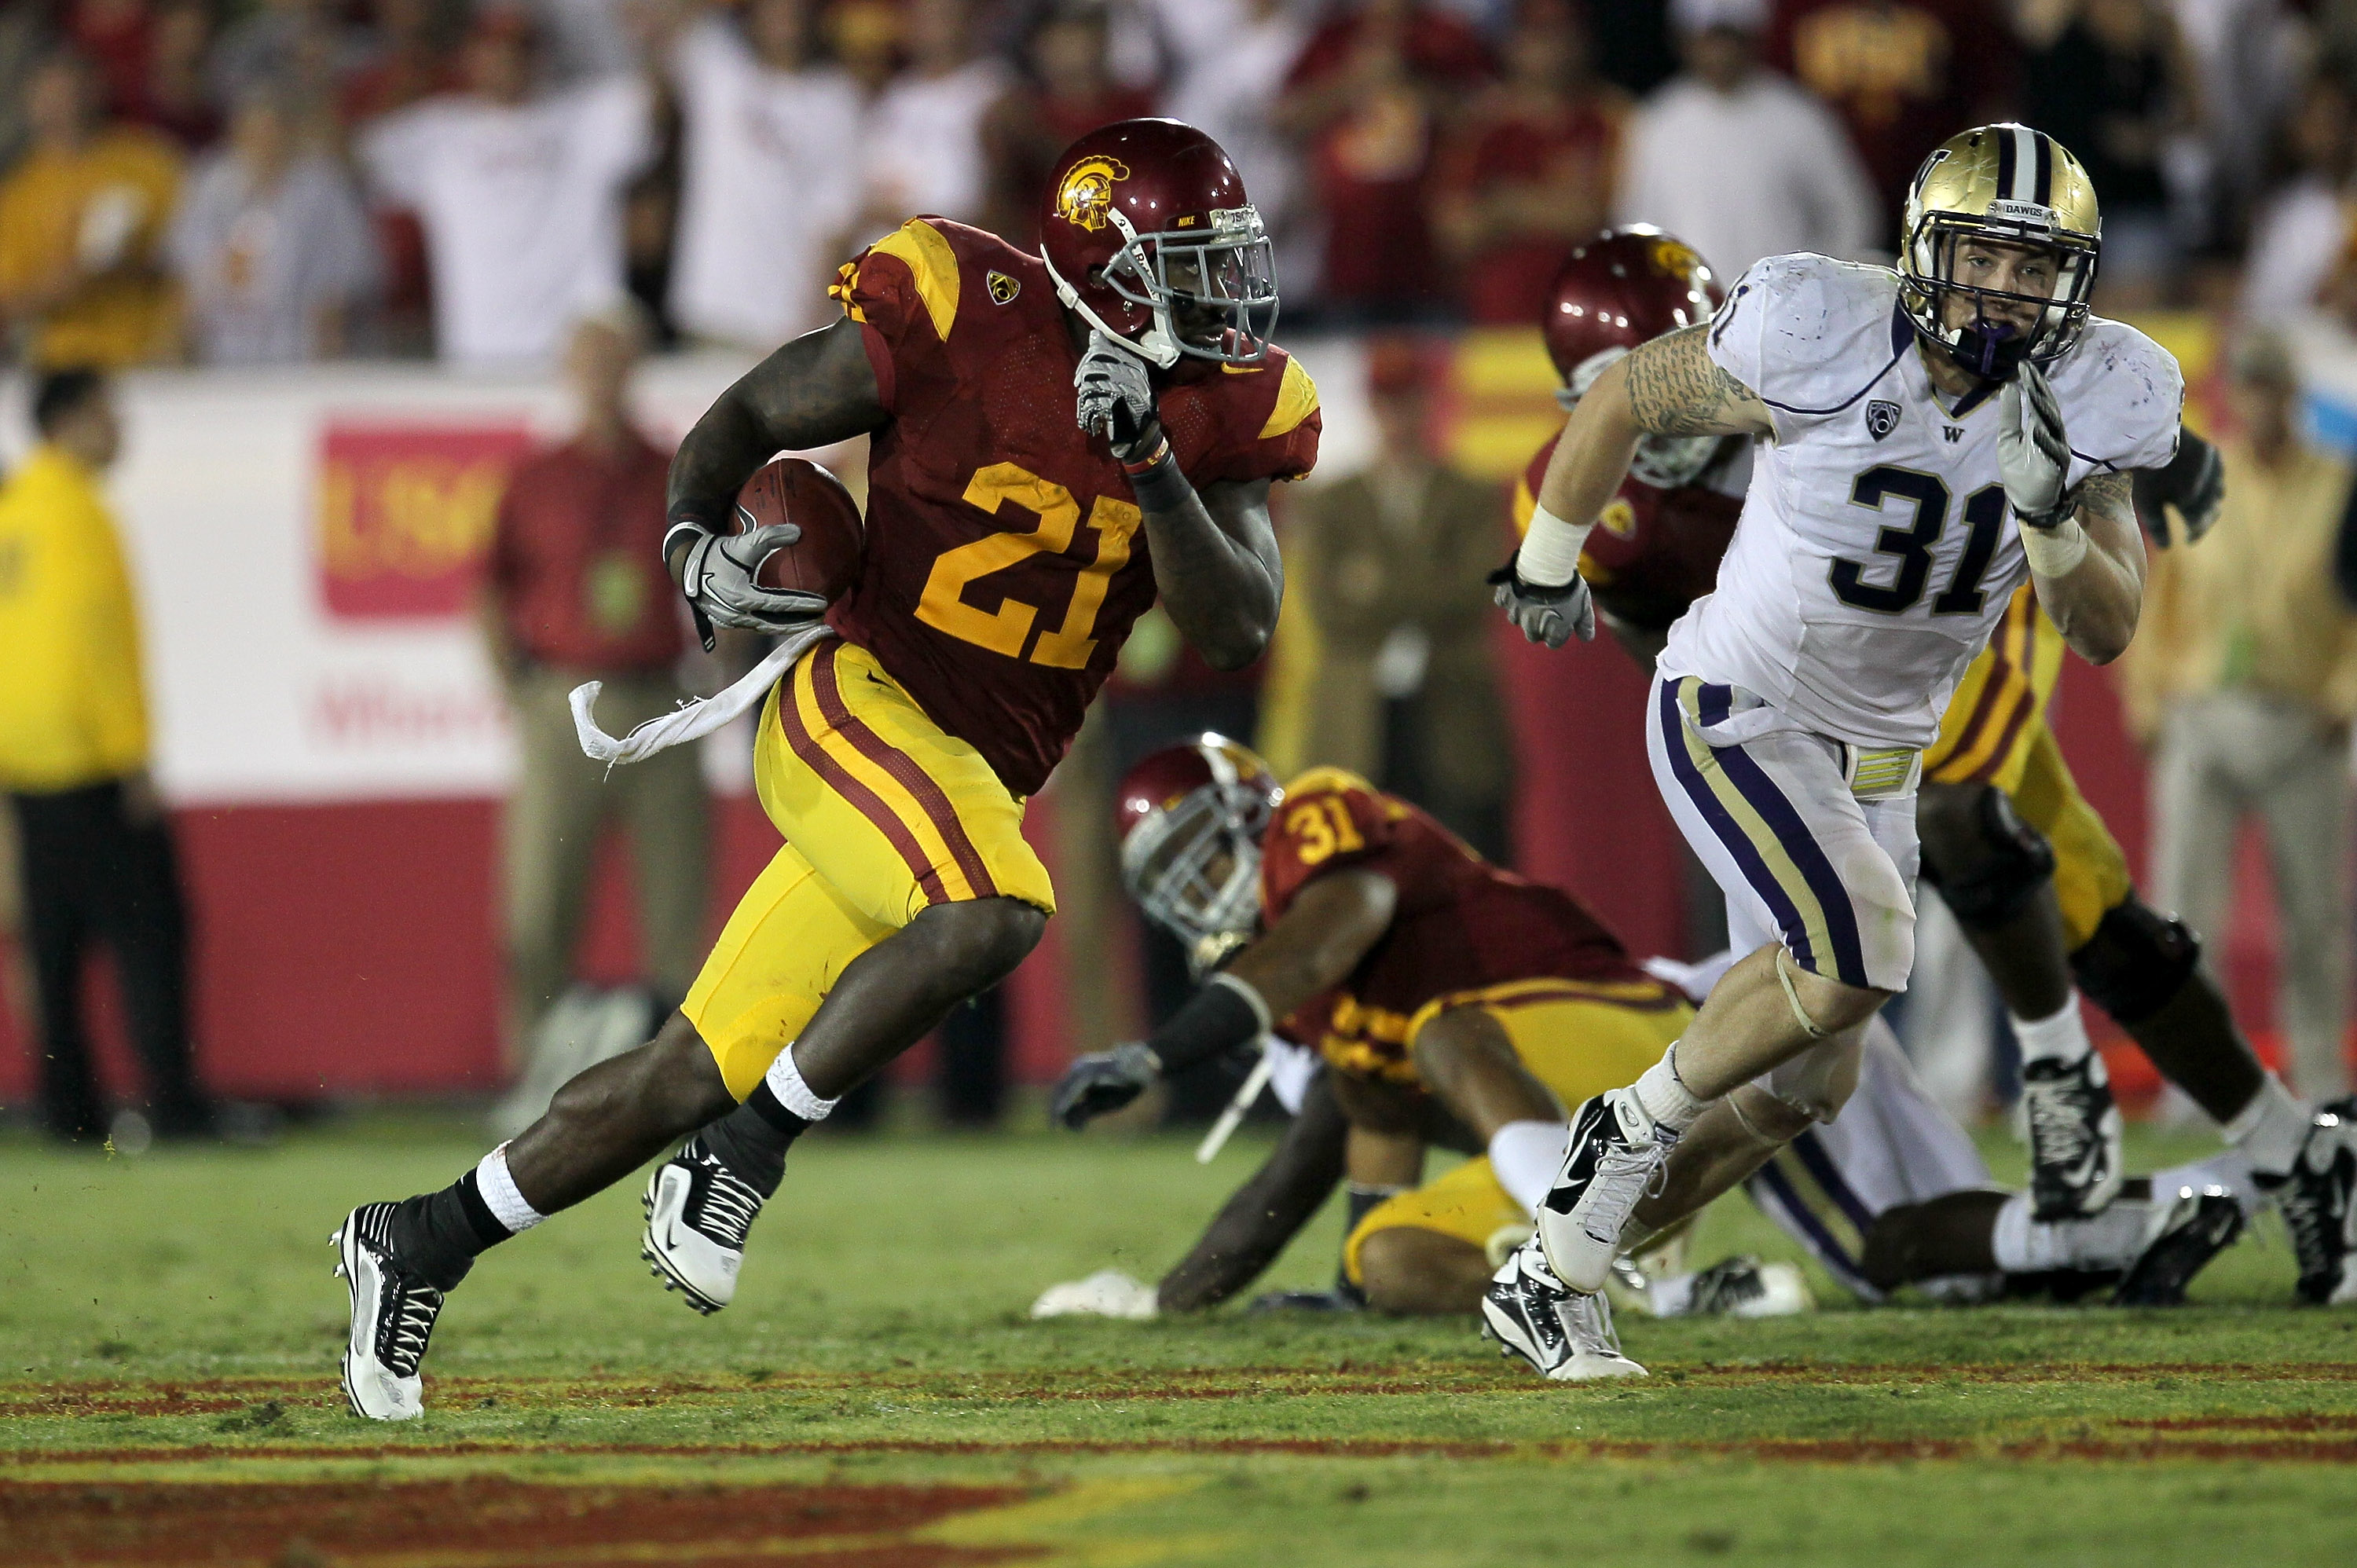 LOS ANGELES, CA - OCTOBER 02:  Running back Allen Bradford #21 of the USC Trojans carries the ball against linebacker Cort Dennison #31 of the Washington Huskies at the Los Angeles Memorial Coliseum on October 2, 2010 in Los Angeles, California.  Washingt